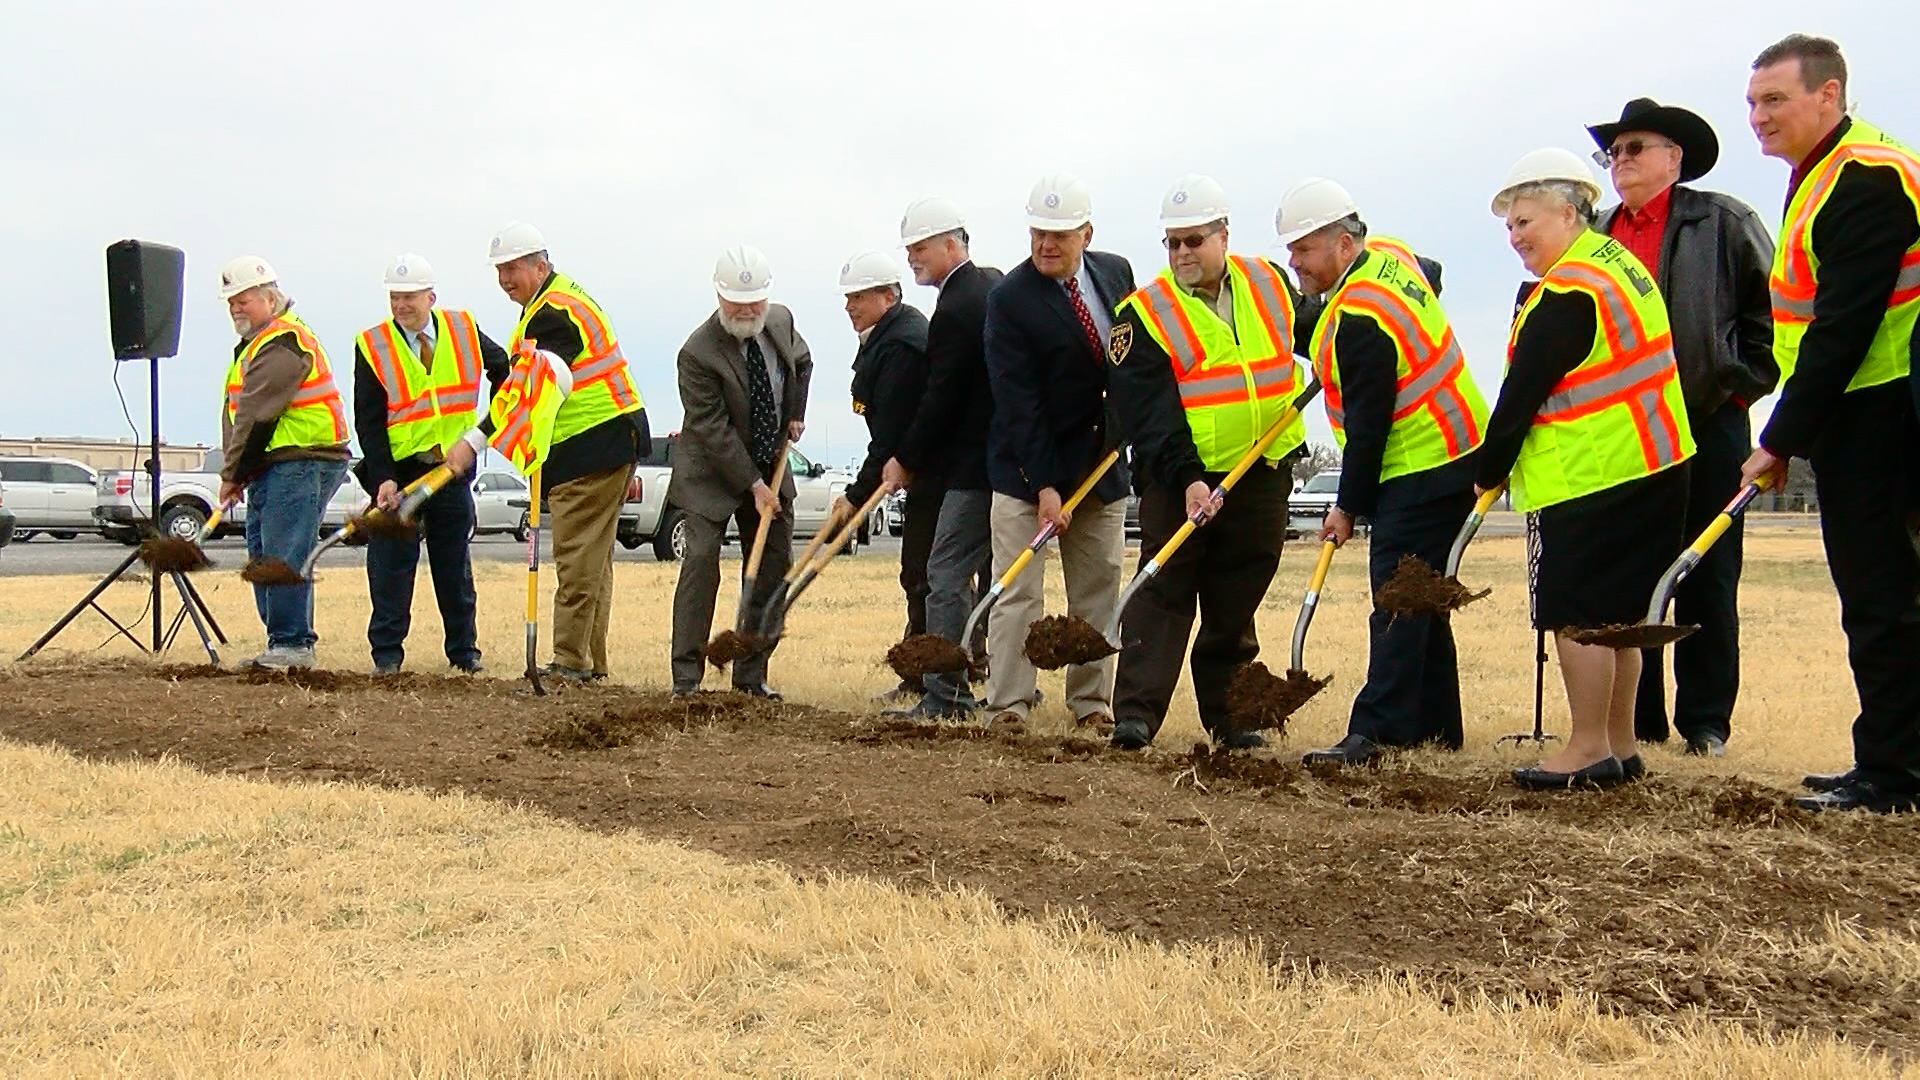 GROUNDBREAKING LAW ENFORCEMENT CENTER_1544579158378.jpg.jpg